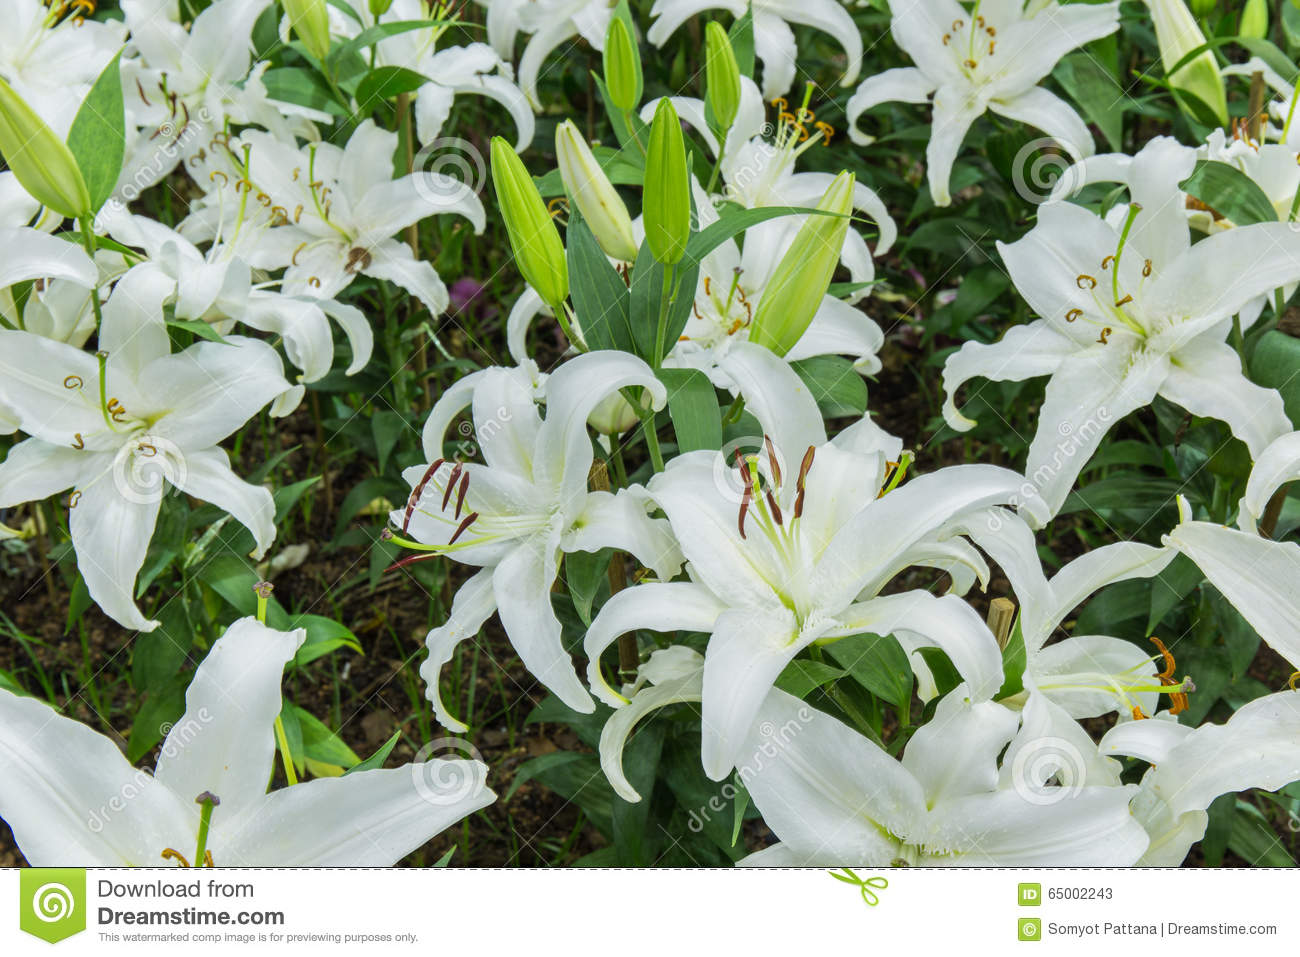 Lily flower stock image image of anther summer outside 65002243 download lily flower stock image image of anther summer outside 65002243 izmirmasajfo